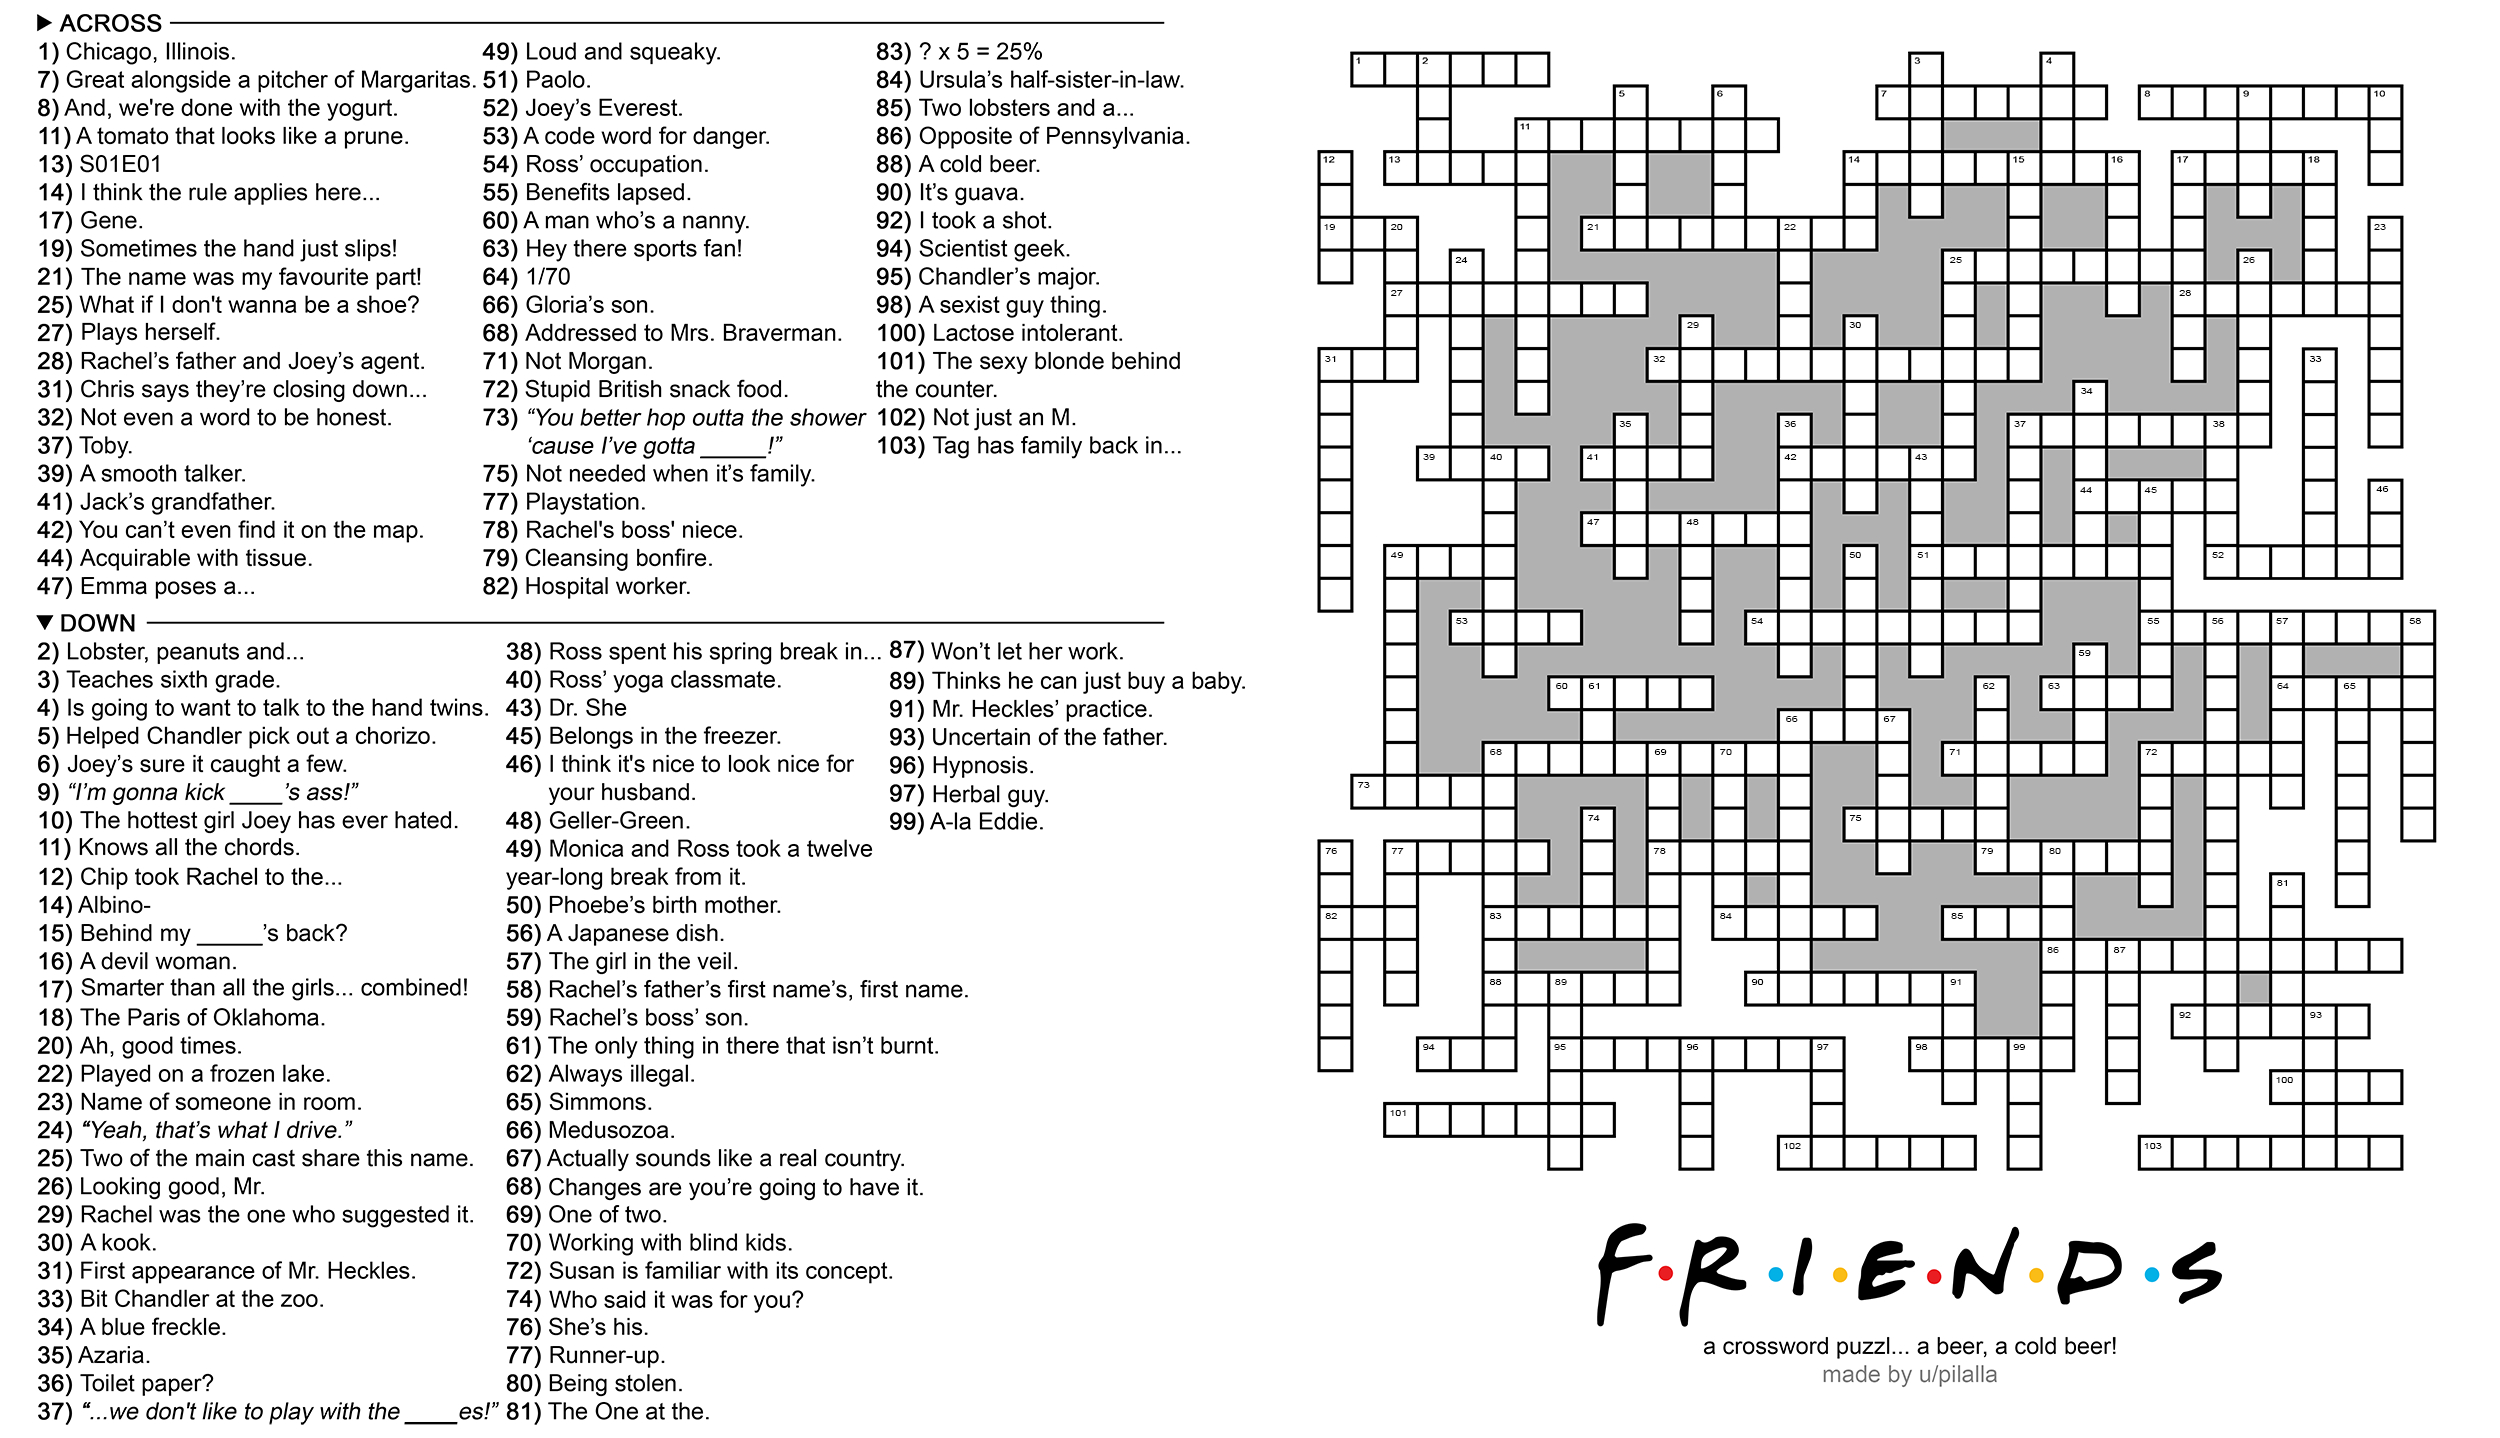 104 Word 'friends' Themed Crossword Puzzle : Howyoudoin - Free Printable Themed Crossword Puzzles